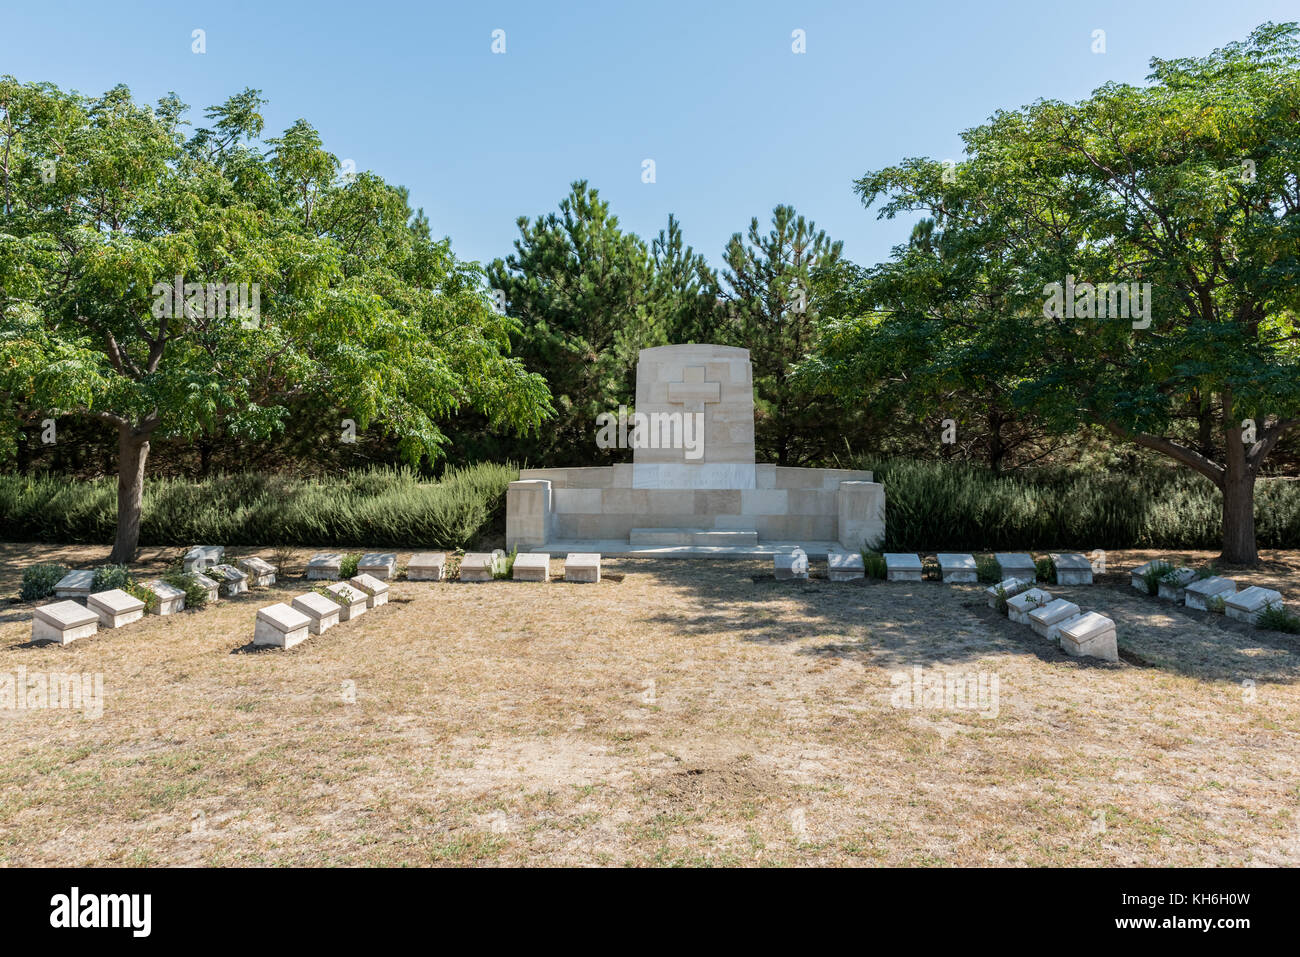 Green Hill Cemetery.The cemetery lies on the east side of the Anzac-Suvla Road in Canakkale,Turkey. - Stock Image